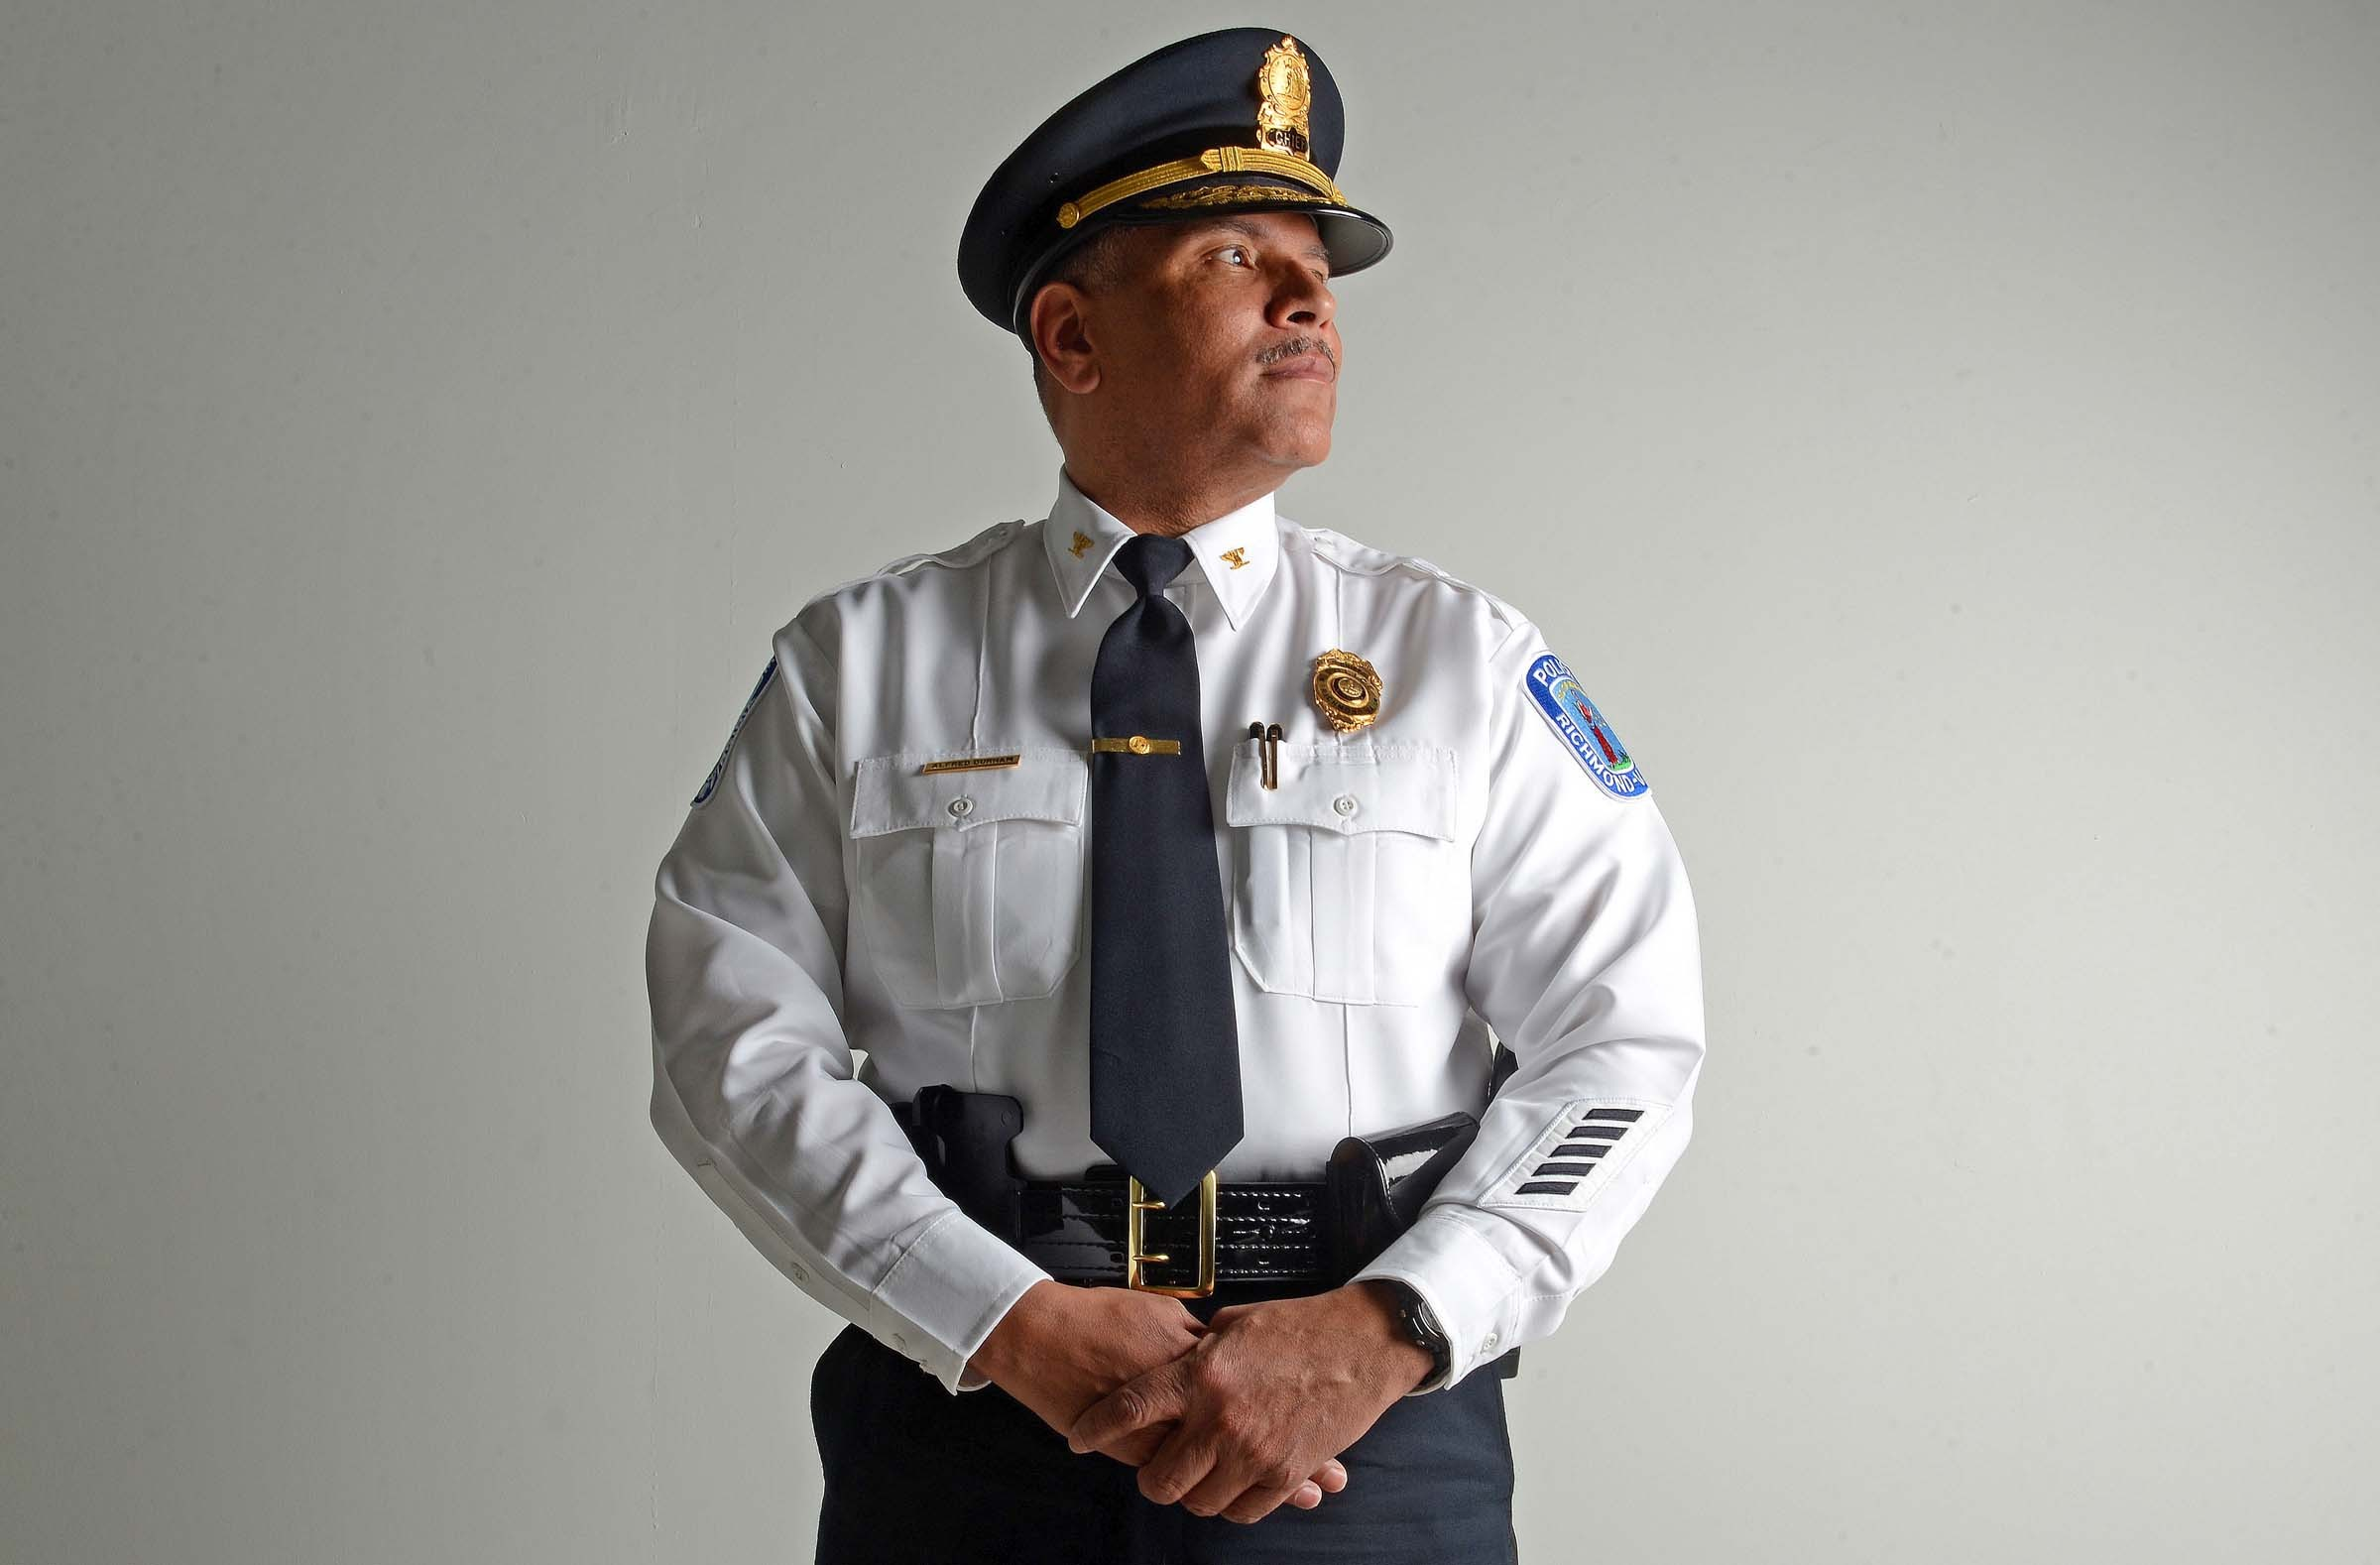 the new chief cover story style weekly richmond va local  click to enlarge richmond police chief alfred durham was officially sworn in friday but took command of the